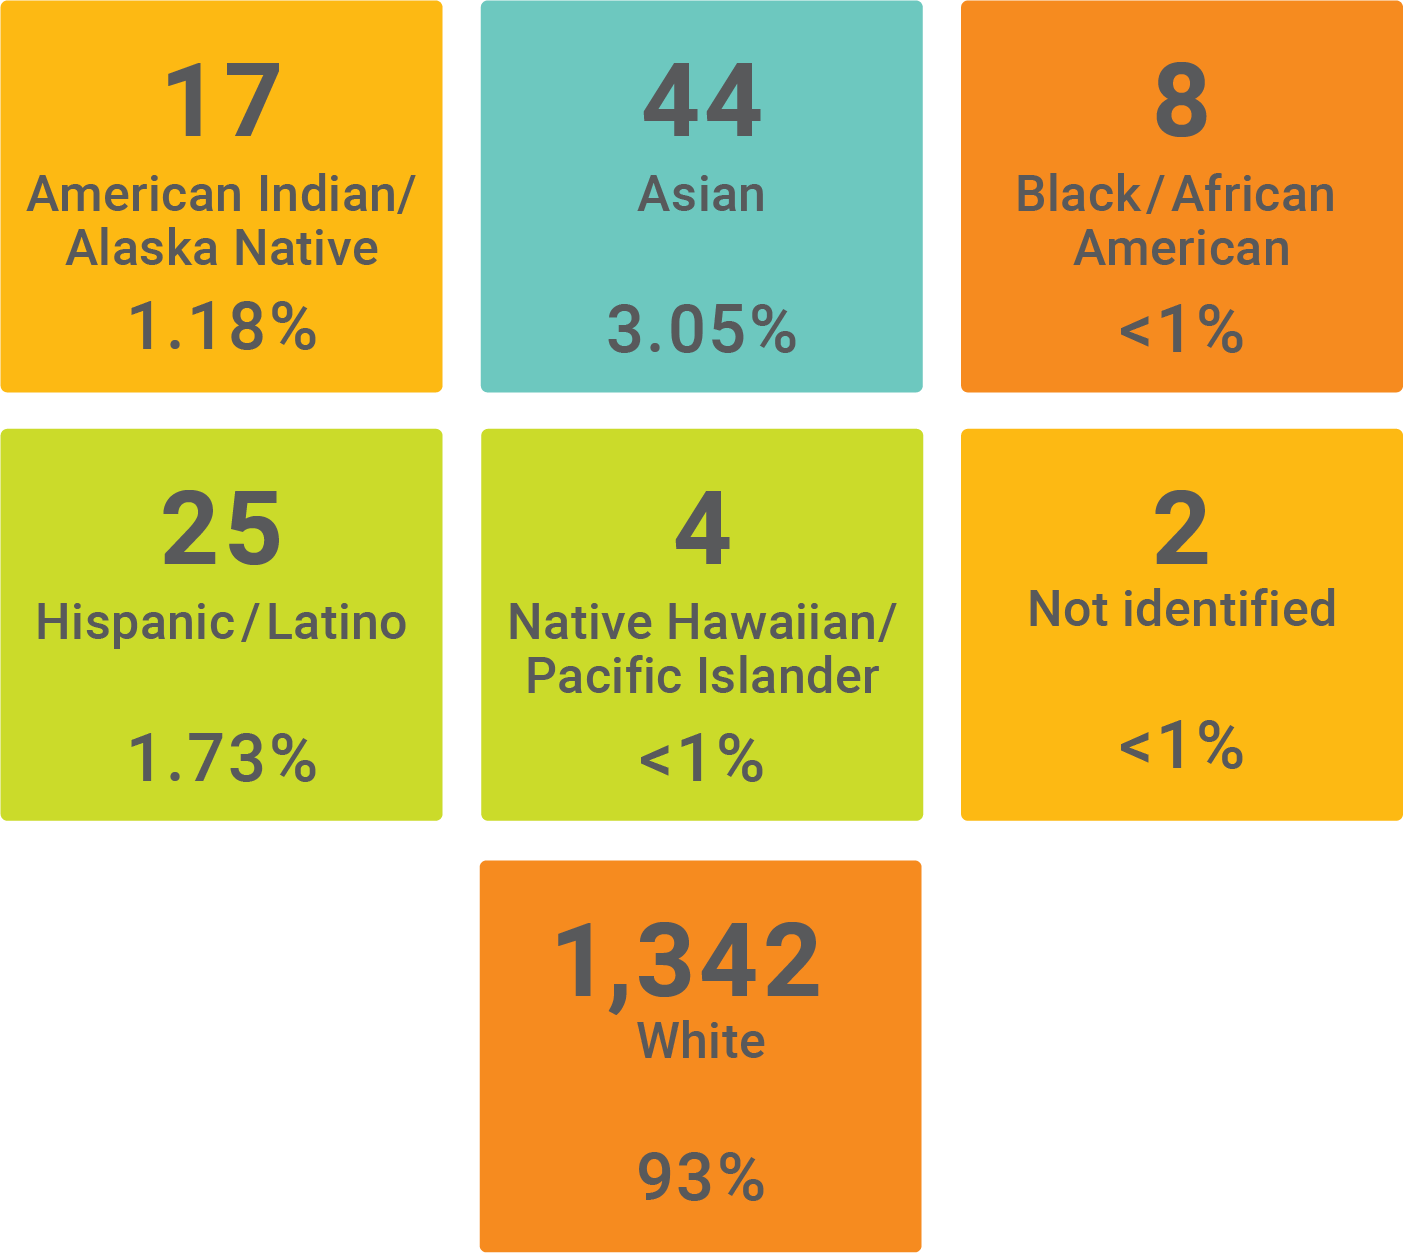 Graphic showing the demographics of faculty by race and ethnicity. American Indian/Alaska Native with 17 at 1.15%, Asian with 44 at 3.05%, Black/African American with 8 at less than 1%, Hispanic/Latino with 25 at 1.73%, Native Hawaiian/Pacific Islander with 4 at less than 1%, Not Identified with 2 at less than 1%, and White with 1,342 at 93%.